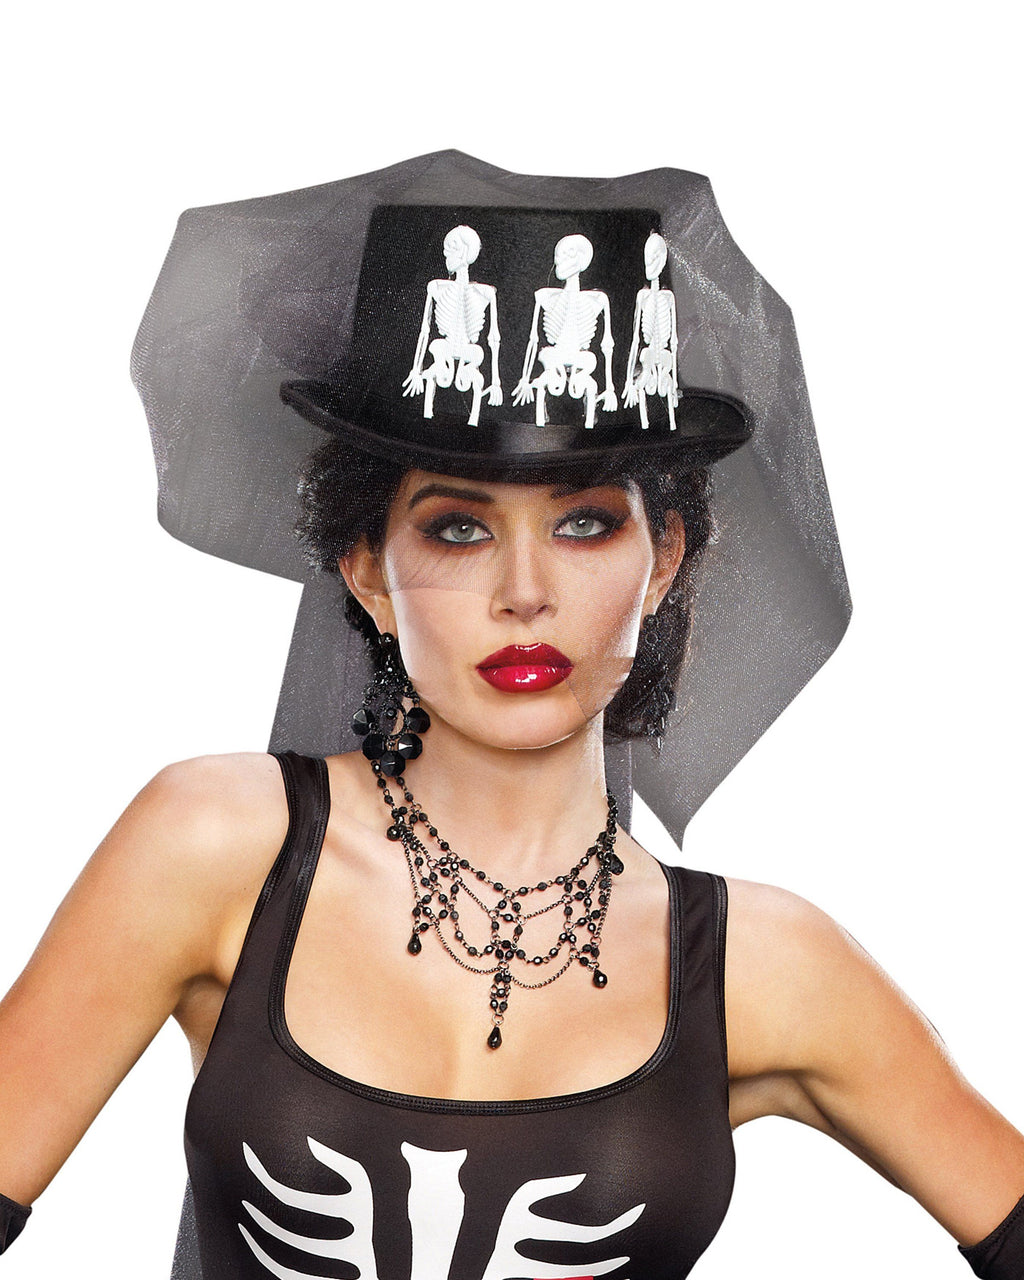 Ms. Bones Hat Headpiece Dreamgirl Costume